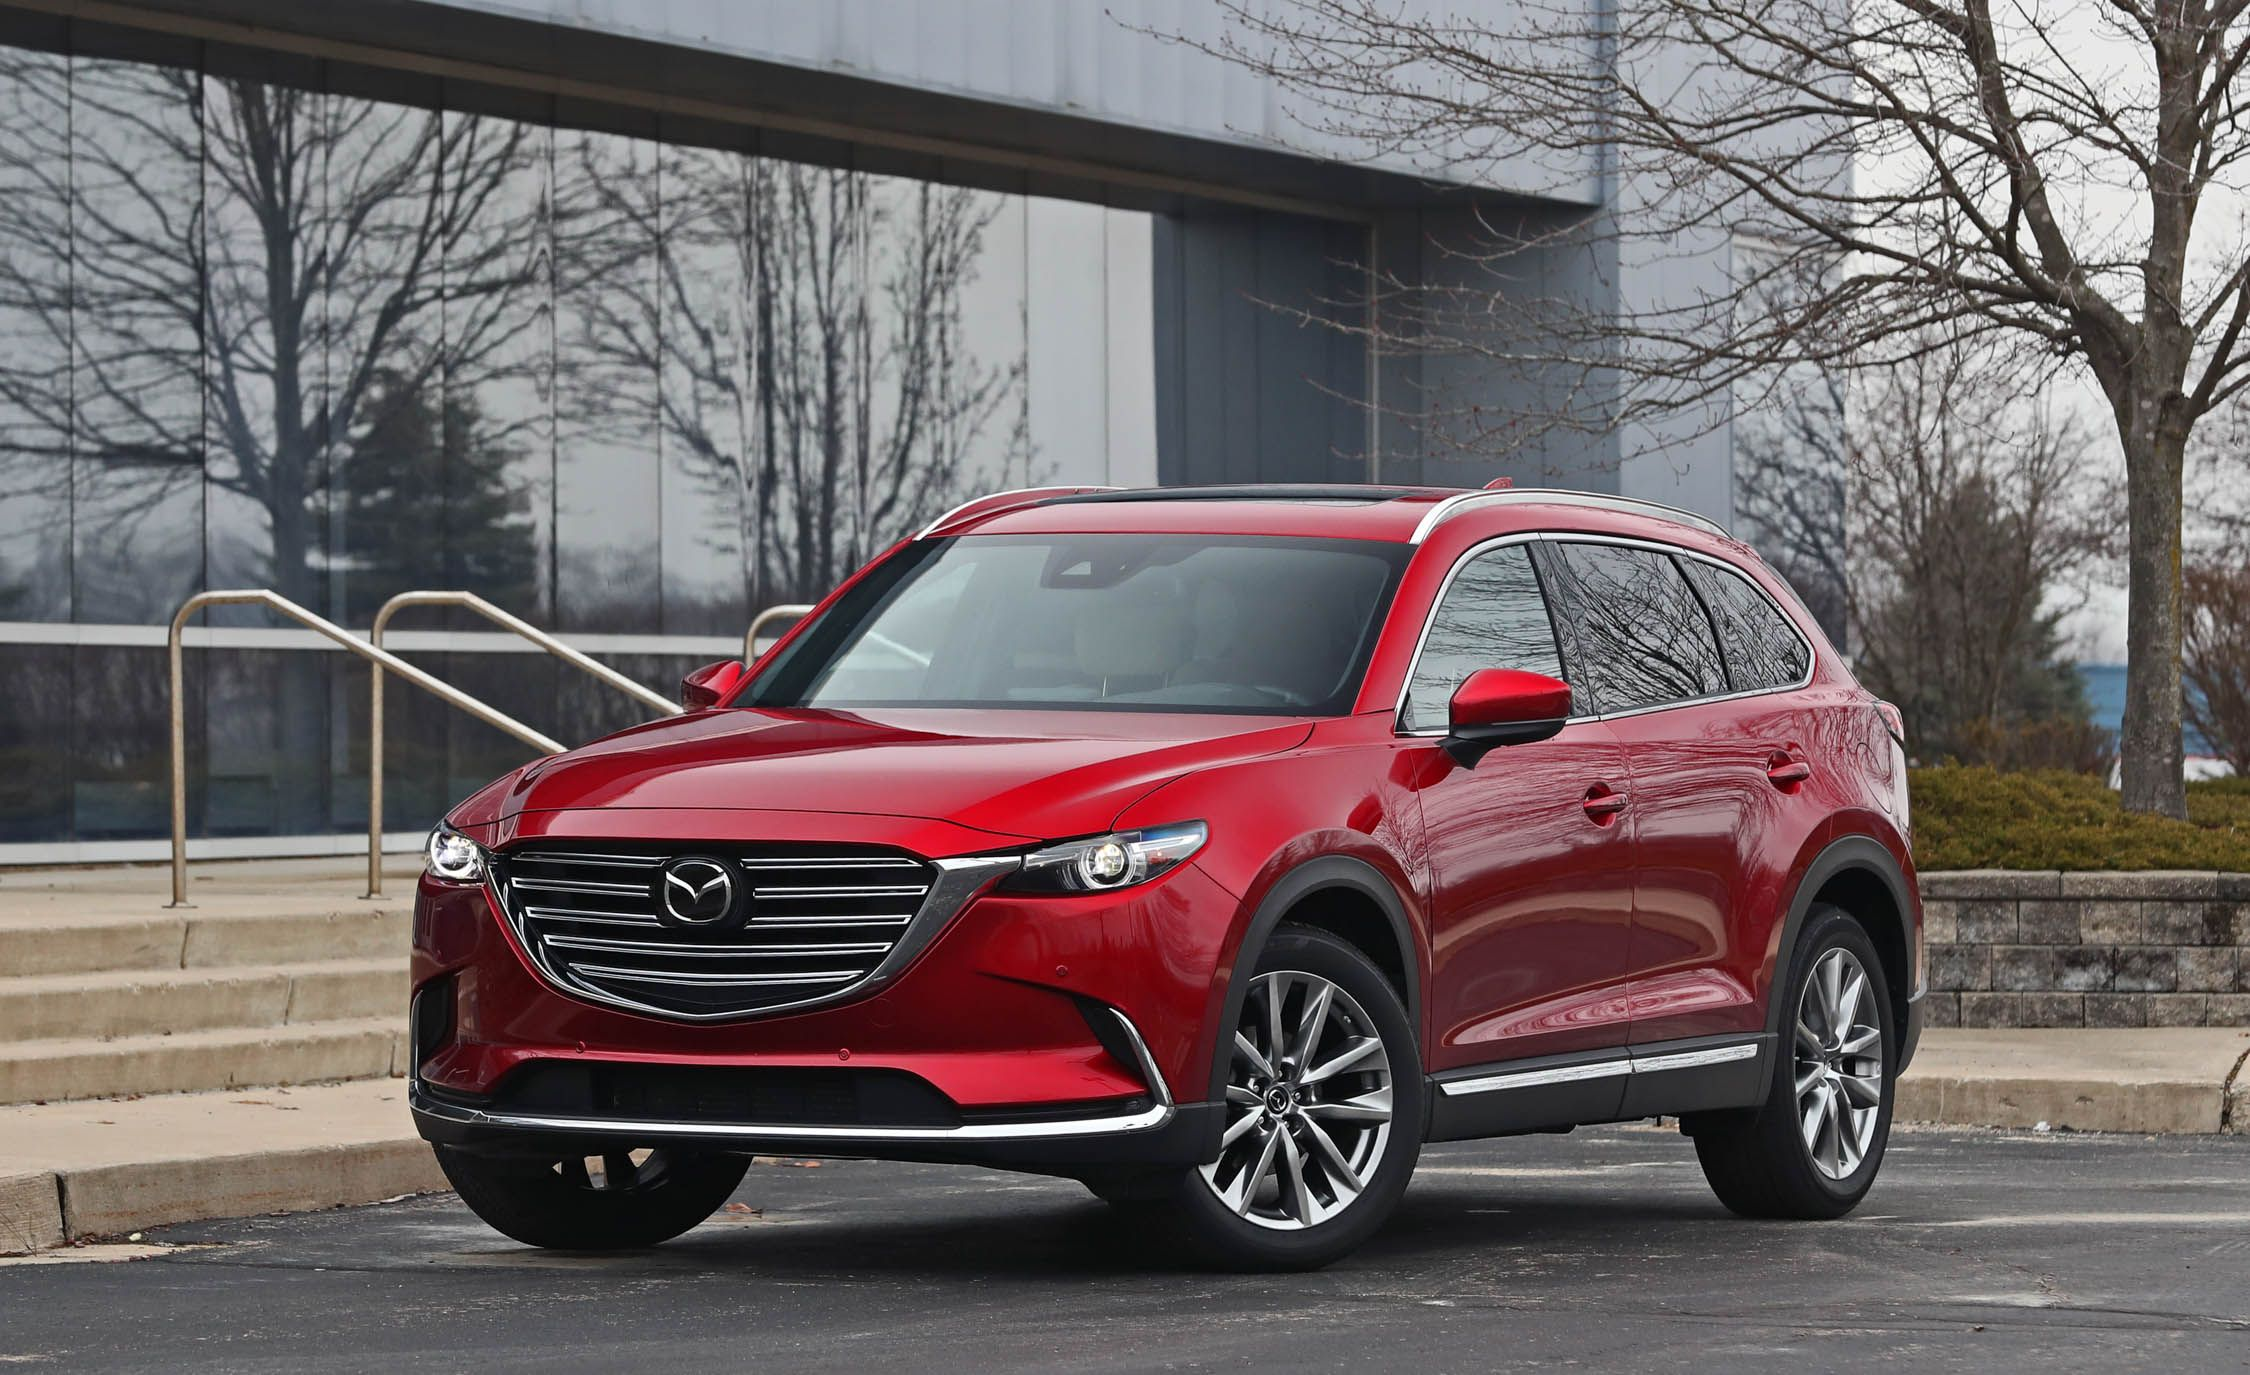 2019 Mazda Cx 9 Reviews Price Photos And Specs Car Driver